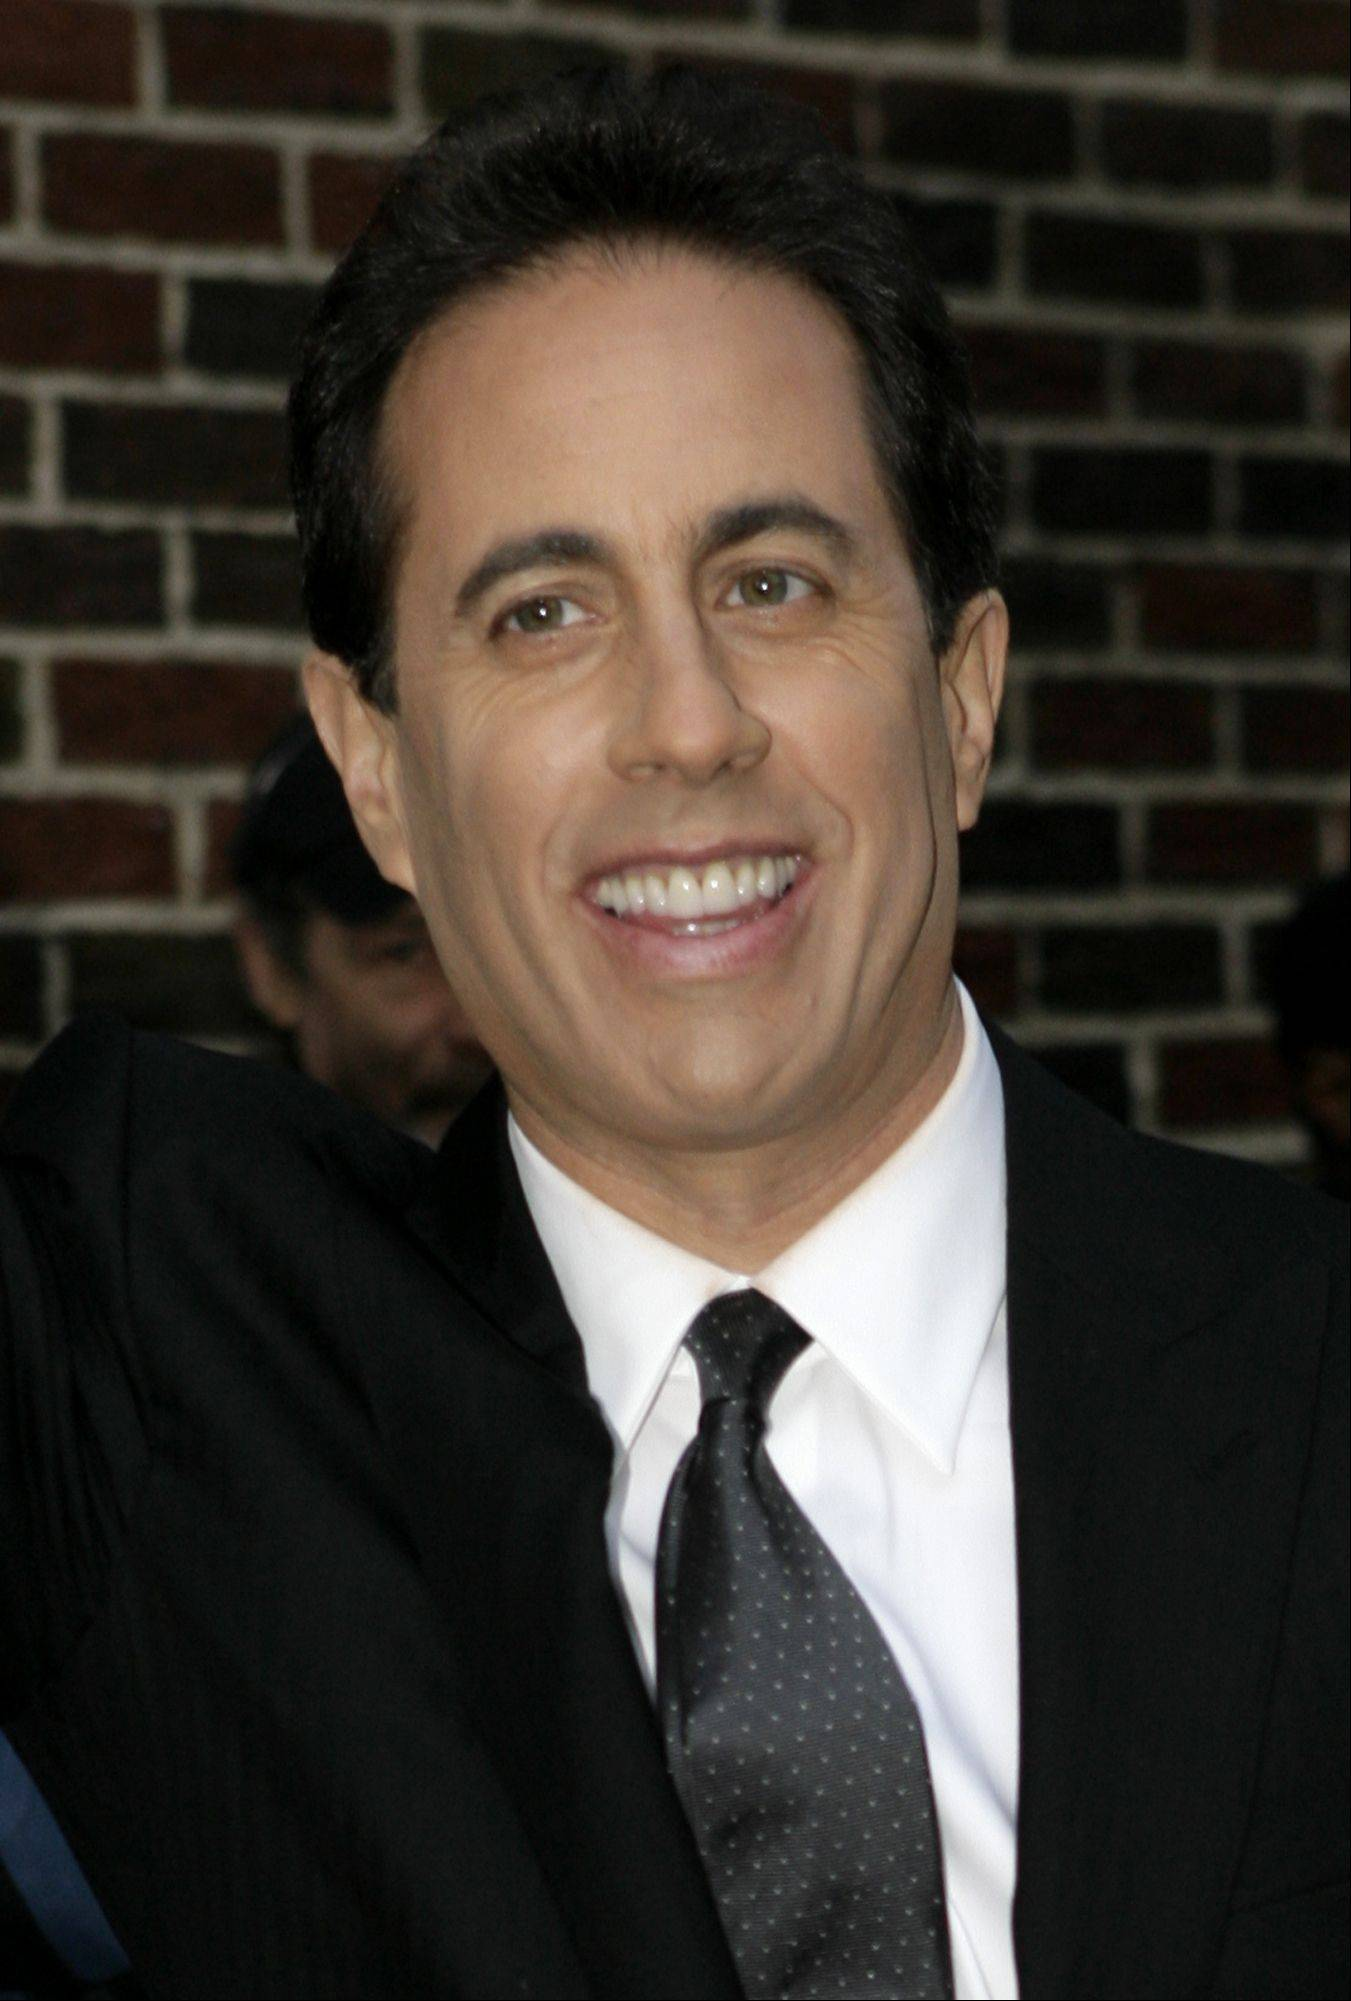 Jerry Seinfeld performs two shows at The Akoo Theatre at Rosemont on Saturday, March 3.